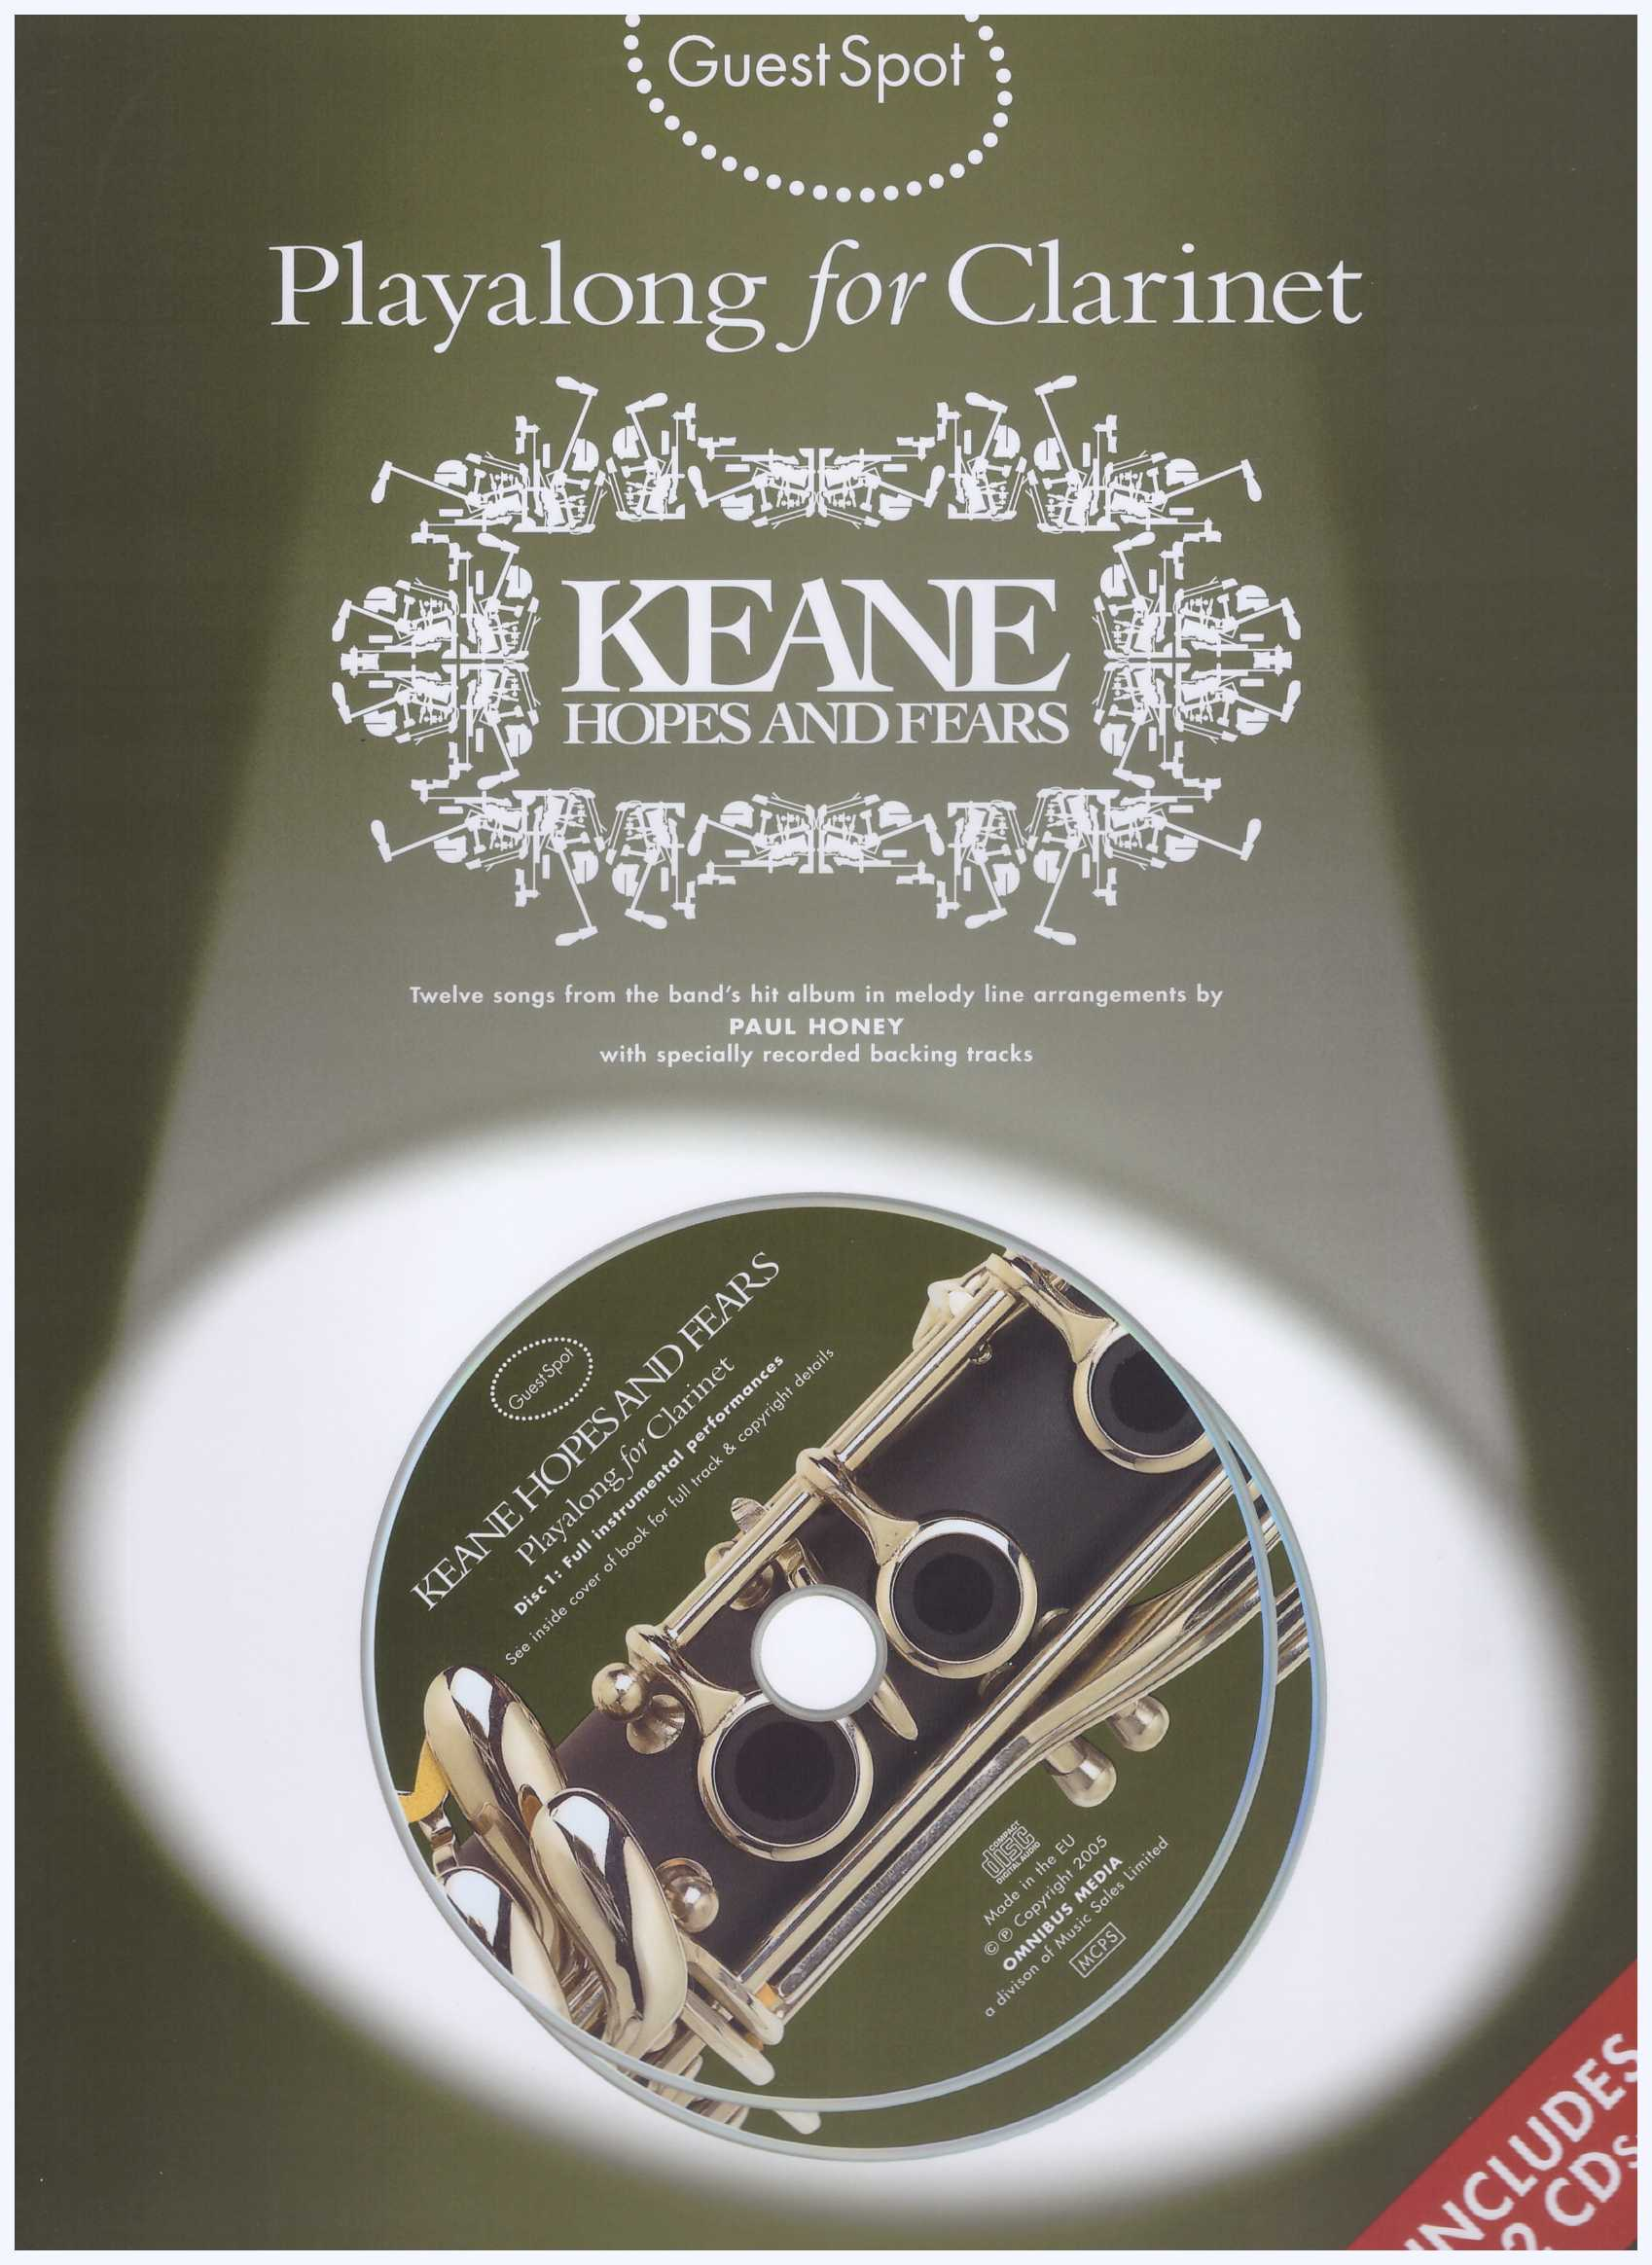 Playalong For Clarinet Keane Hopes & Fears